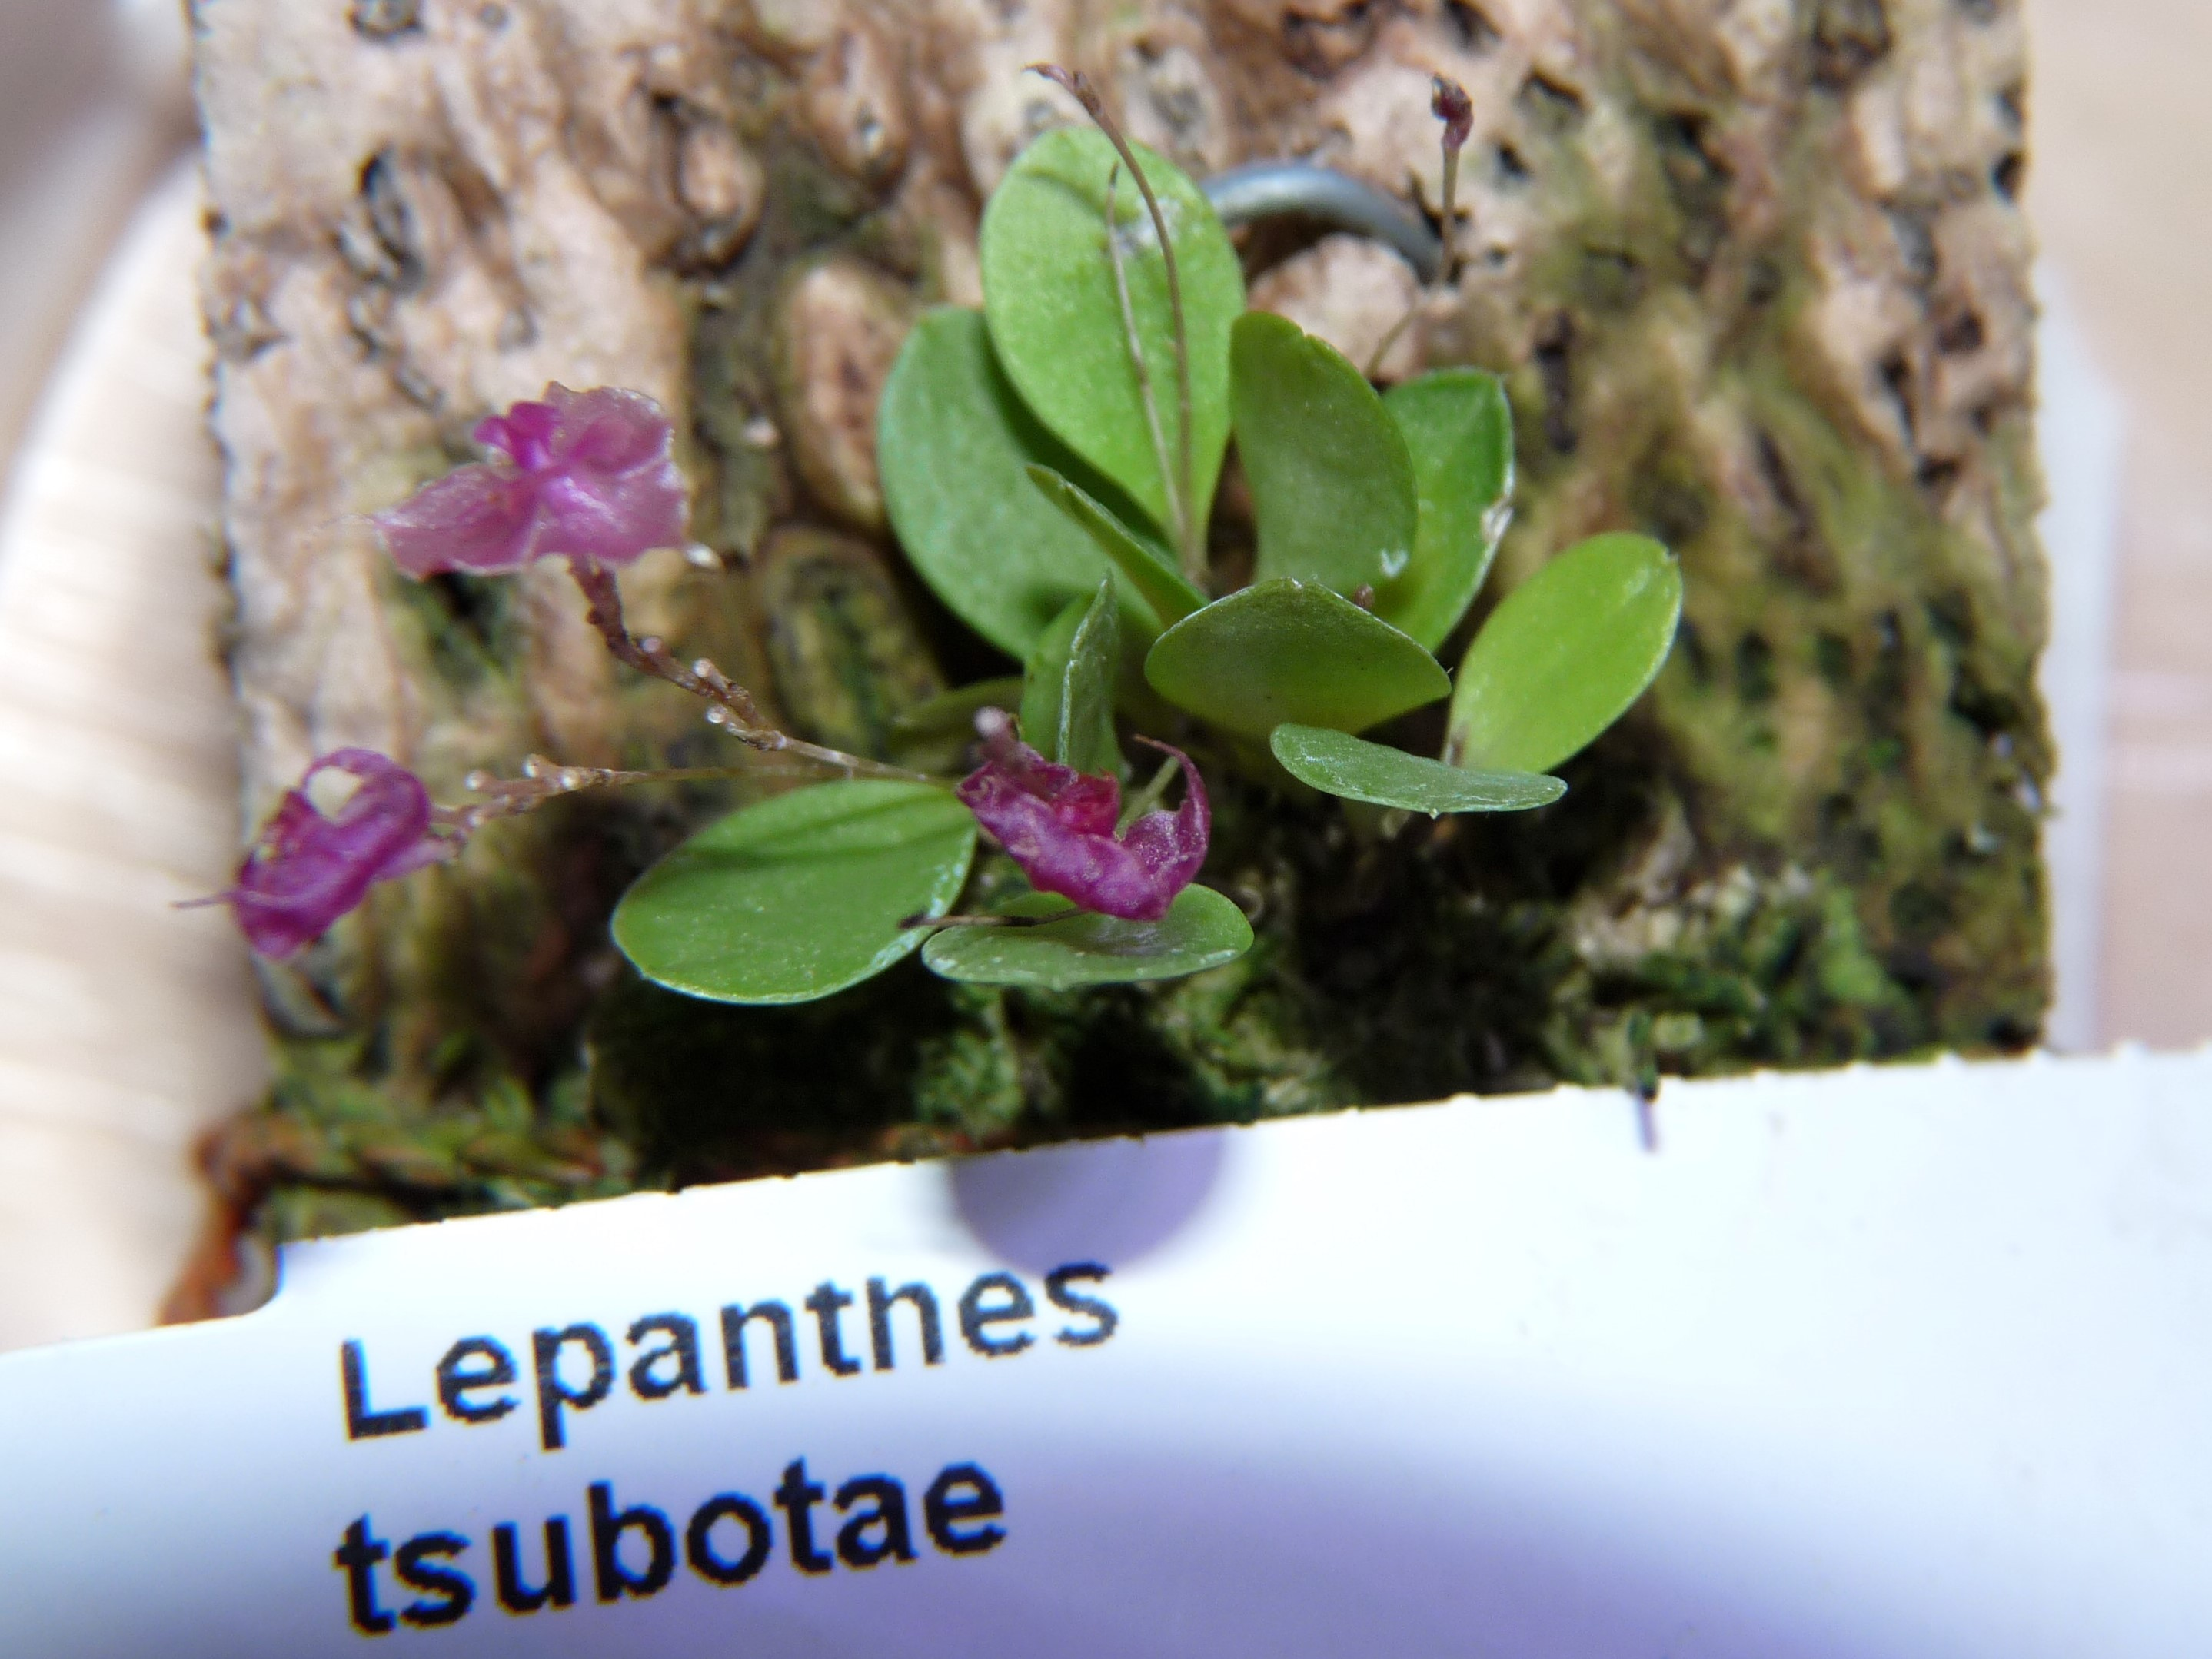 Lepanthes tsubotae PIS0715